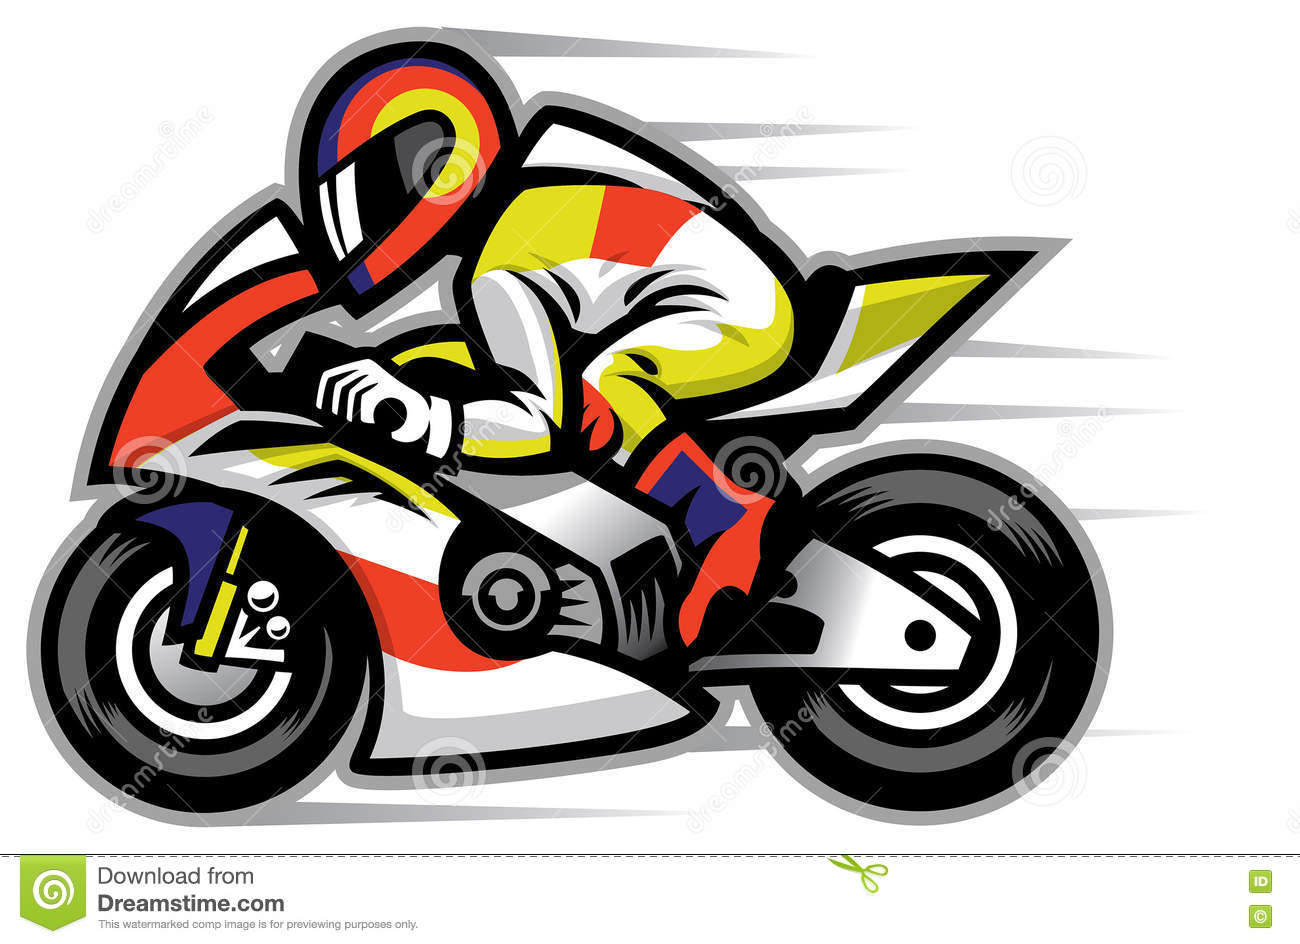 Motorcycle Racing Logo Design Motorcycle Race Mascot Stock Vector Illustration Of Company